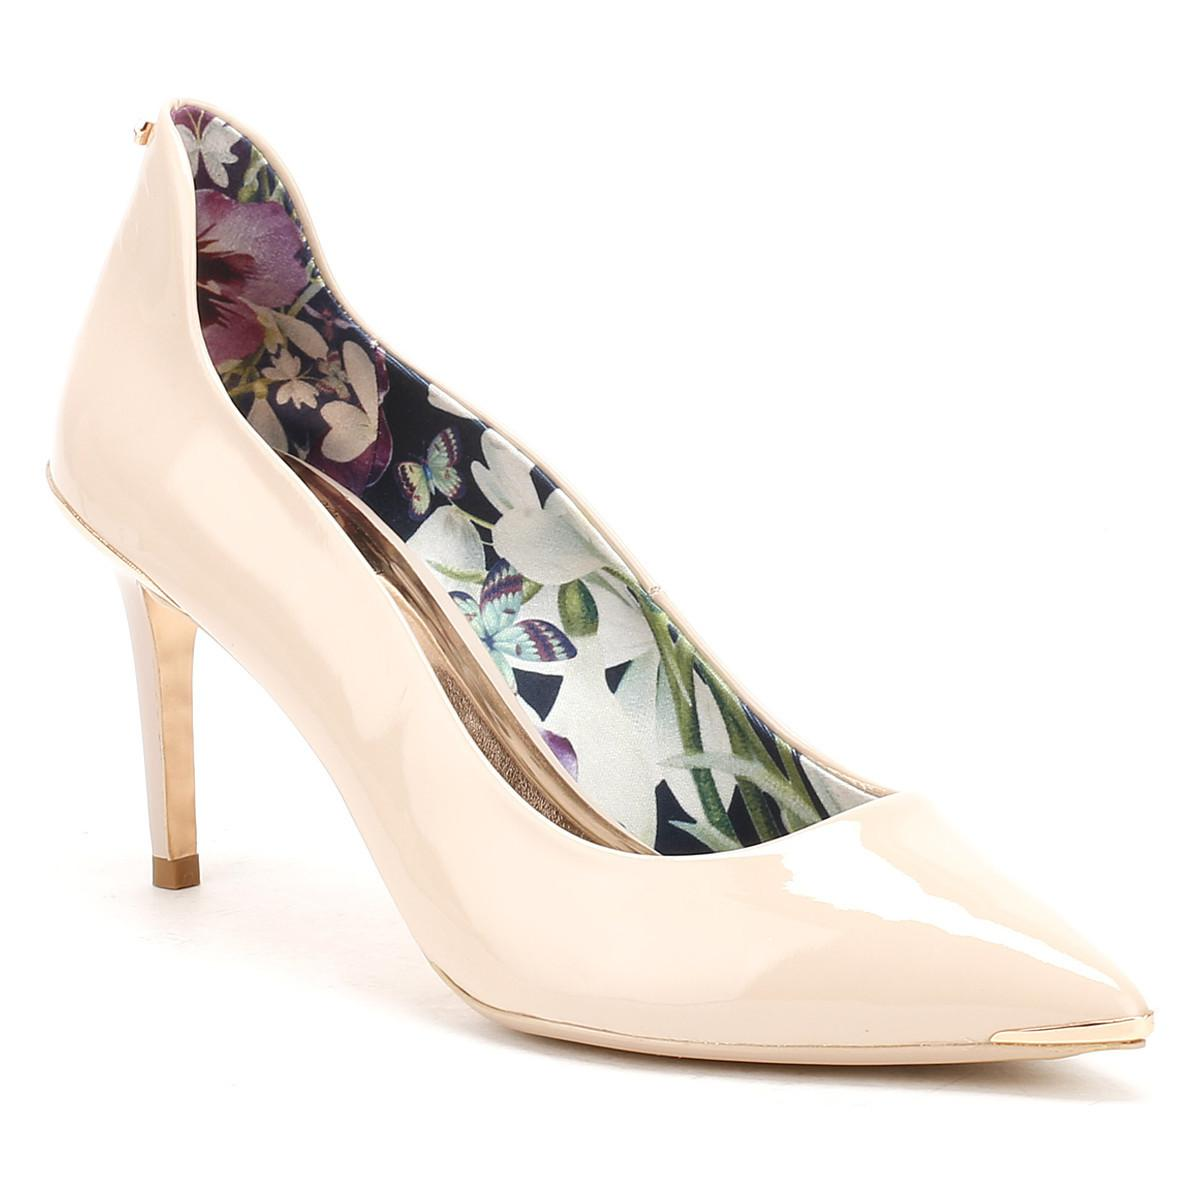 New Ted Baker Women's Vyixin Heels Sale Really Buy Cheap Official Site Shop Cheap Price pJeTW9AyBr